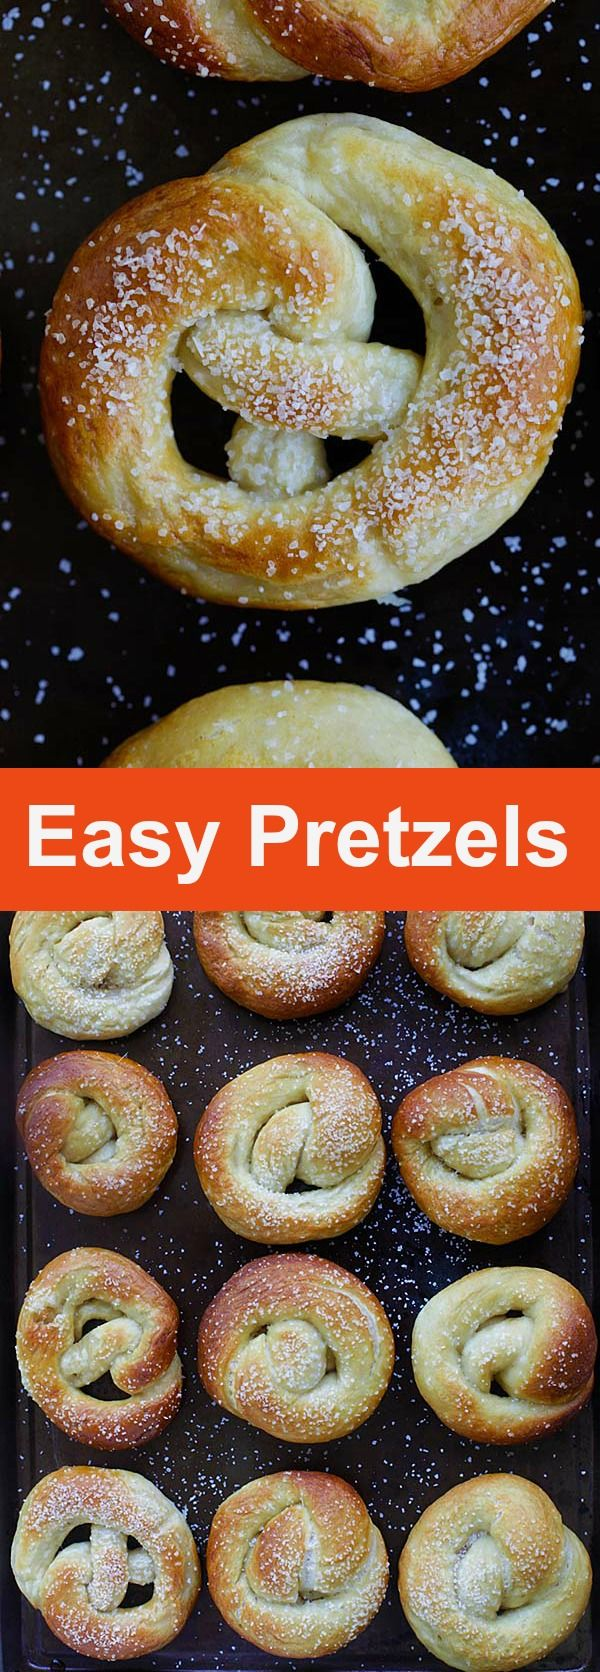 Easy Pretzels – the best homemade pretzel recipe that is super easy and fail-proof. Soft and chewy at the same time. So good | rasamalaysia.com